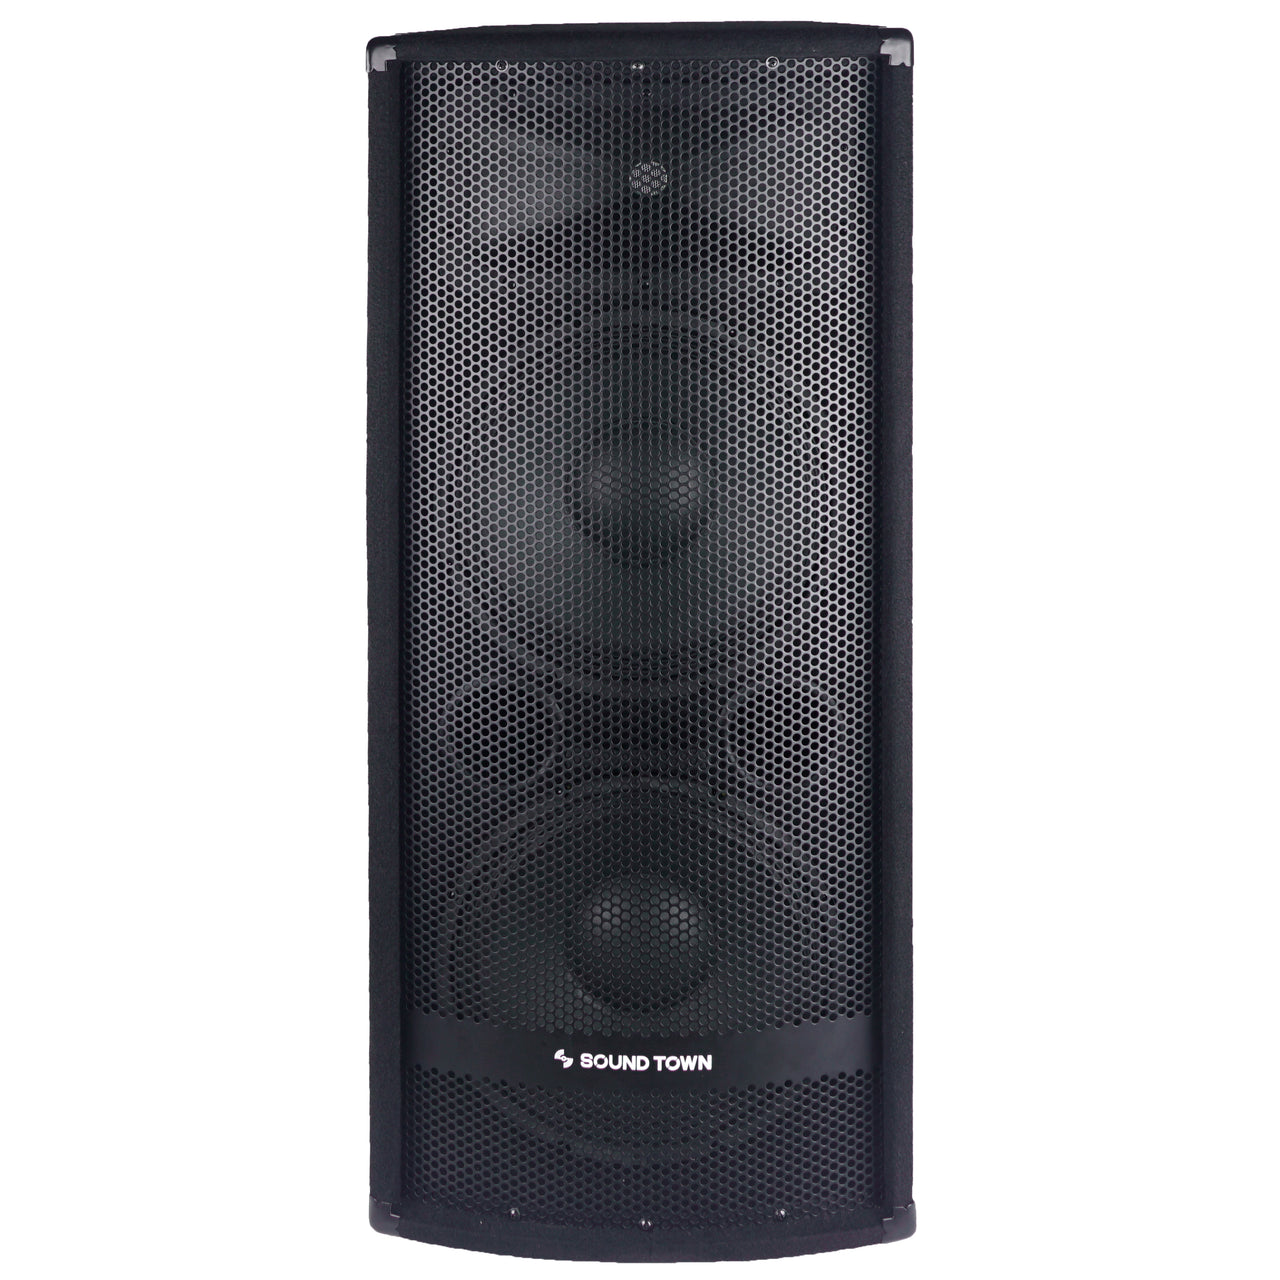 "METIS-212<br/>METIS Series Dual 12"" 1200W 2-Way Full-range Passive DJ PA Pro Audio Speaker w/ Titanium Compression Driver for Live Sound, Karaoke, Bar, Church"